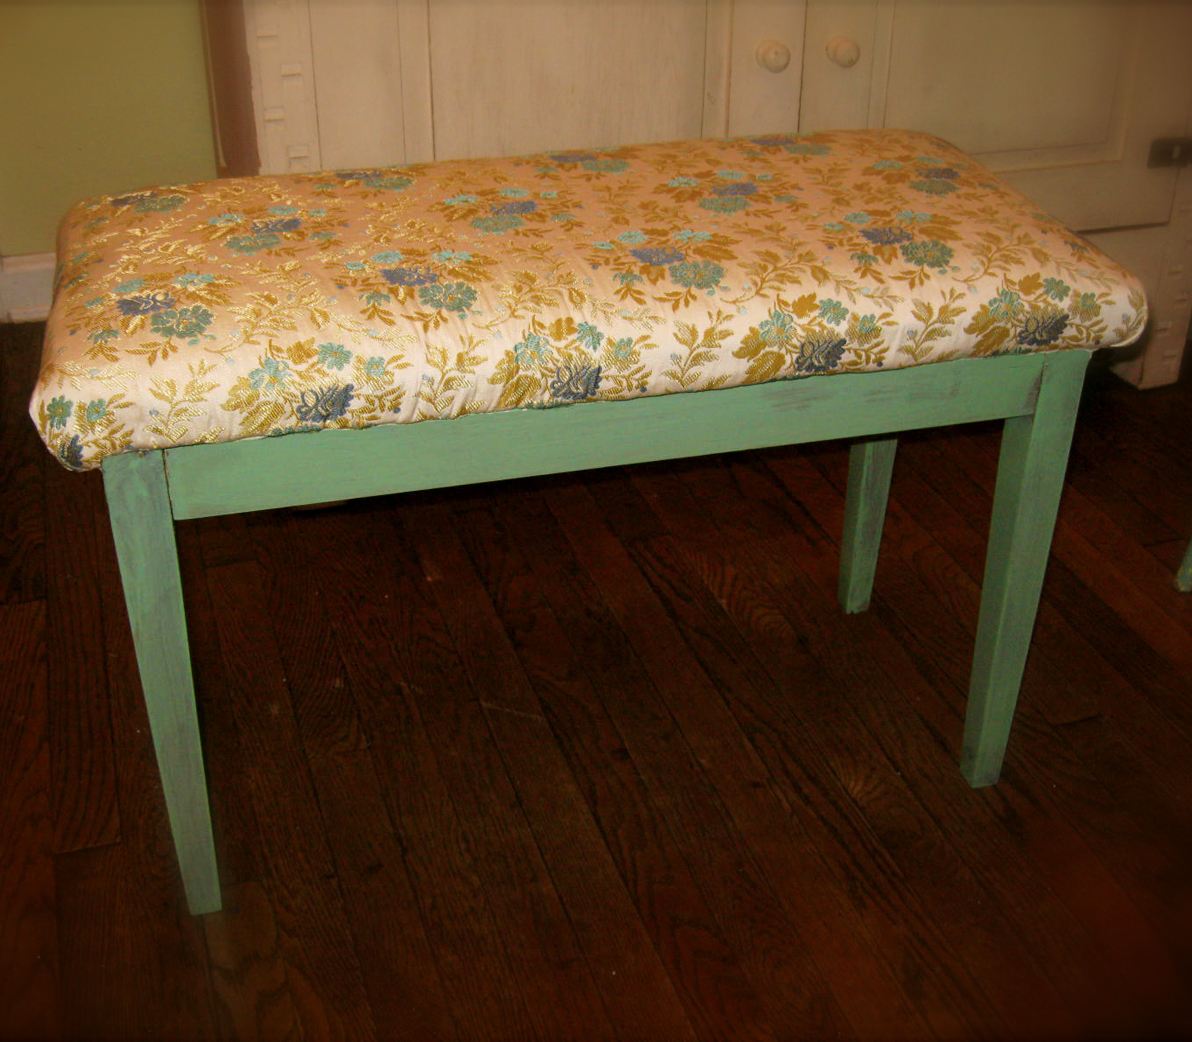 Vintage Piano Bench Oh Glory Vintage Vintage Clothing Shabby Chic Repurposed Furniture